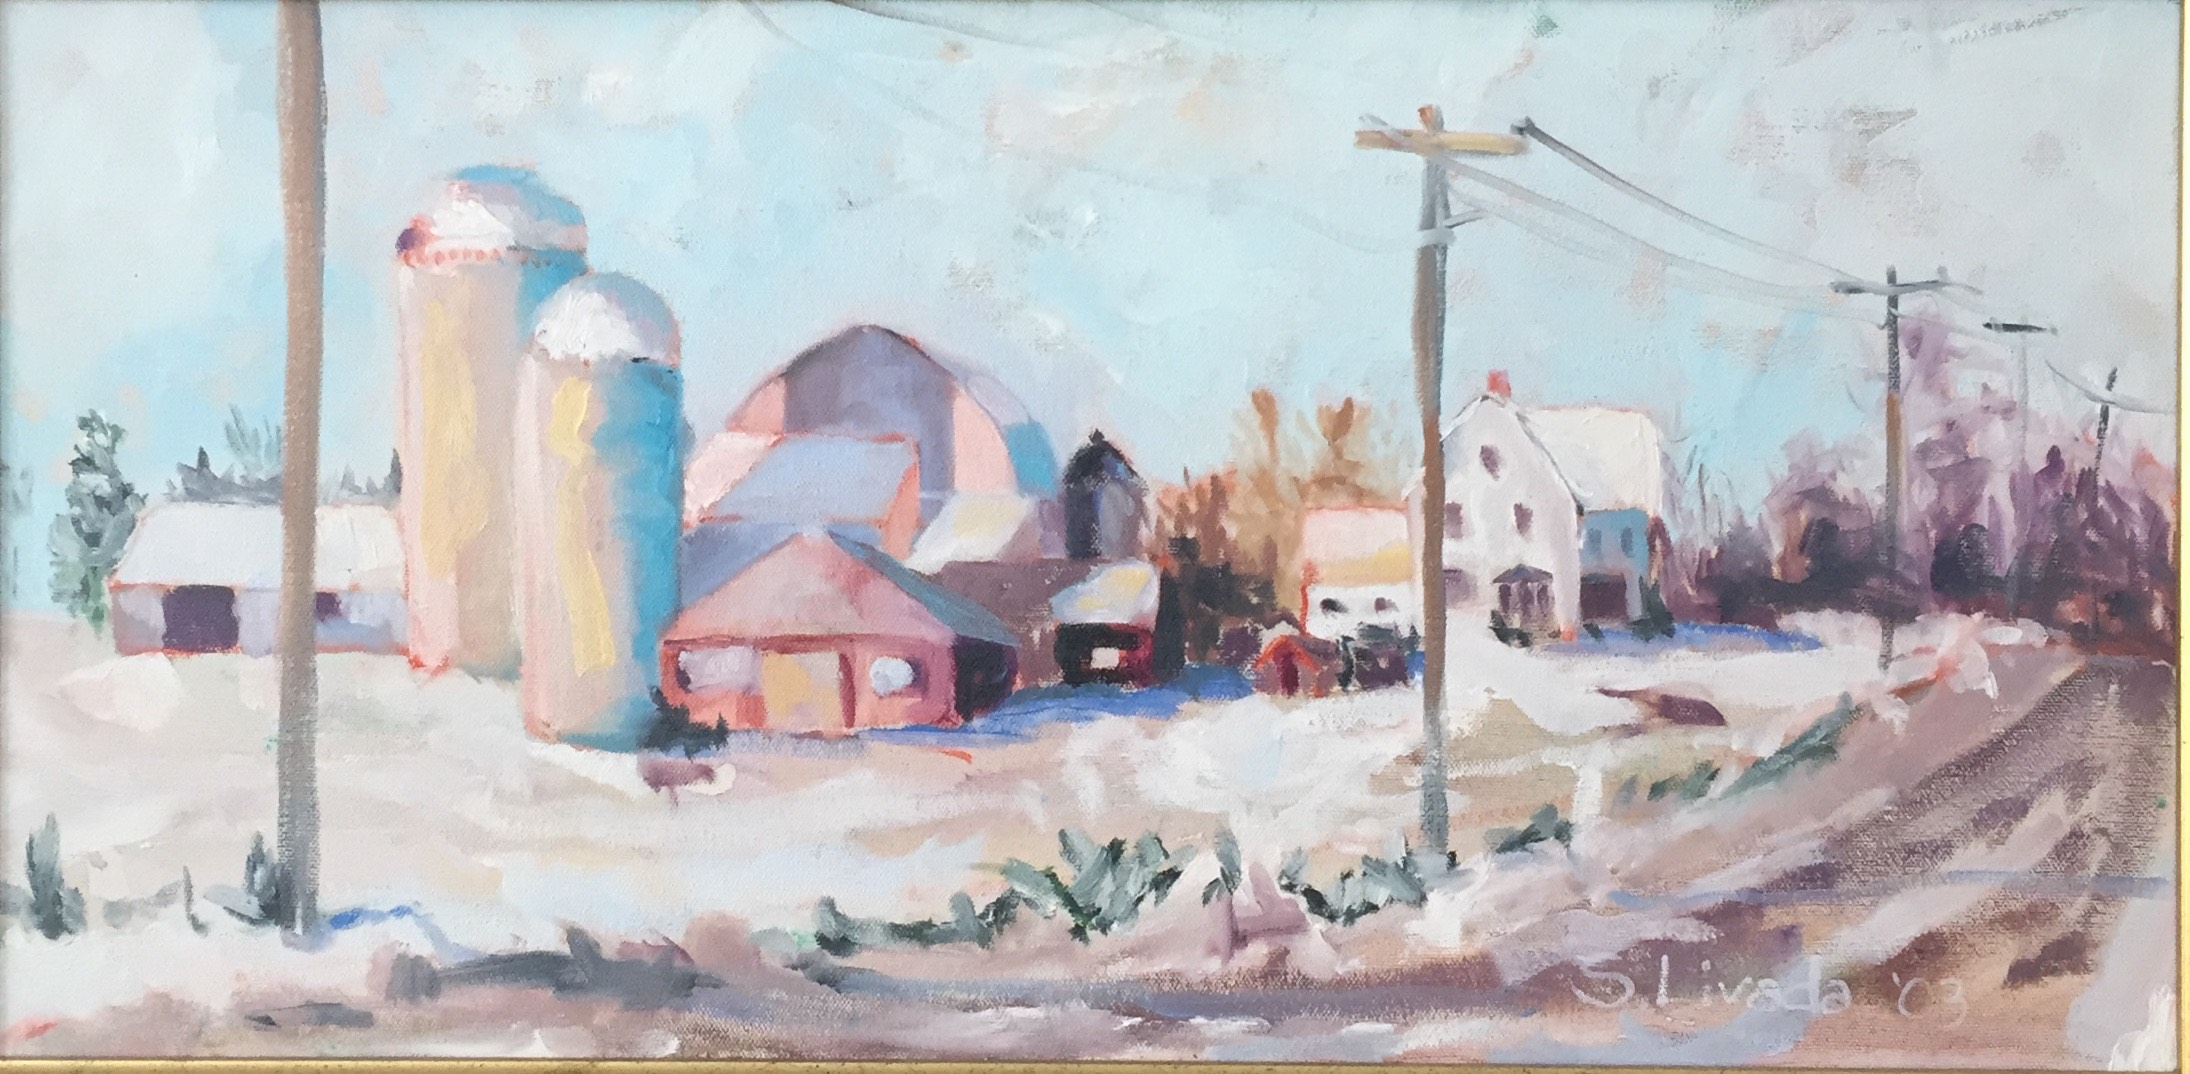 Susan Livada  -  Grand Isle Farm, Snow  -  oil on canvas  -  12 x 24  -  $900